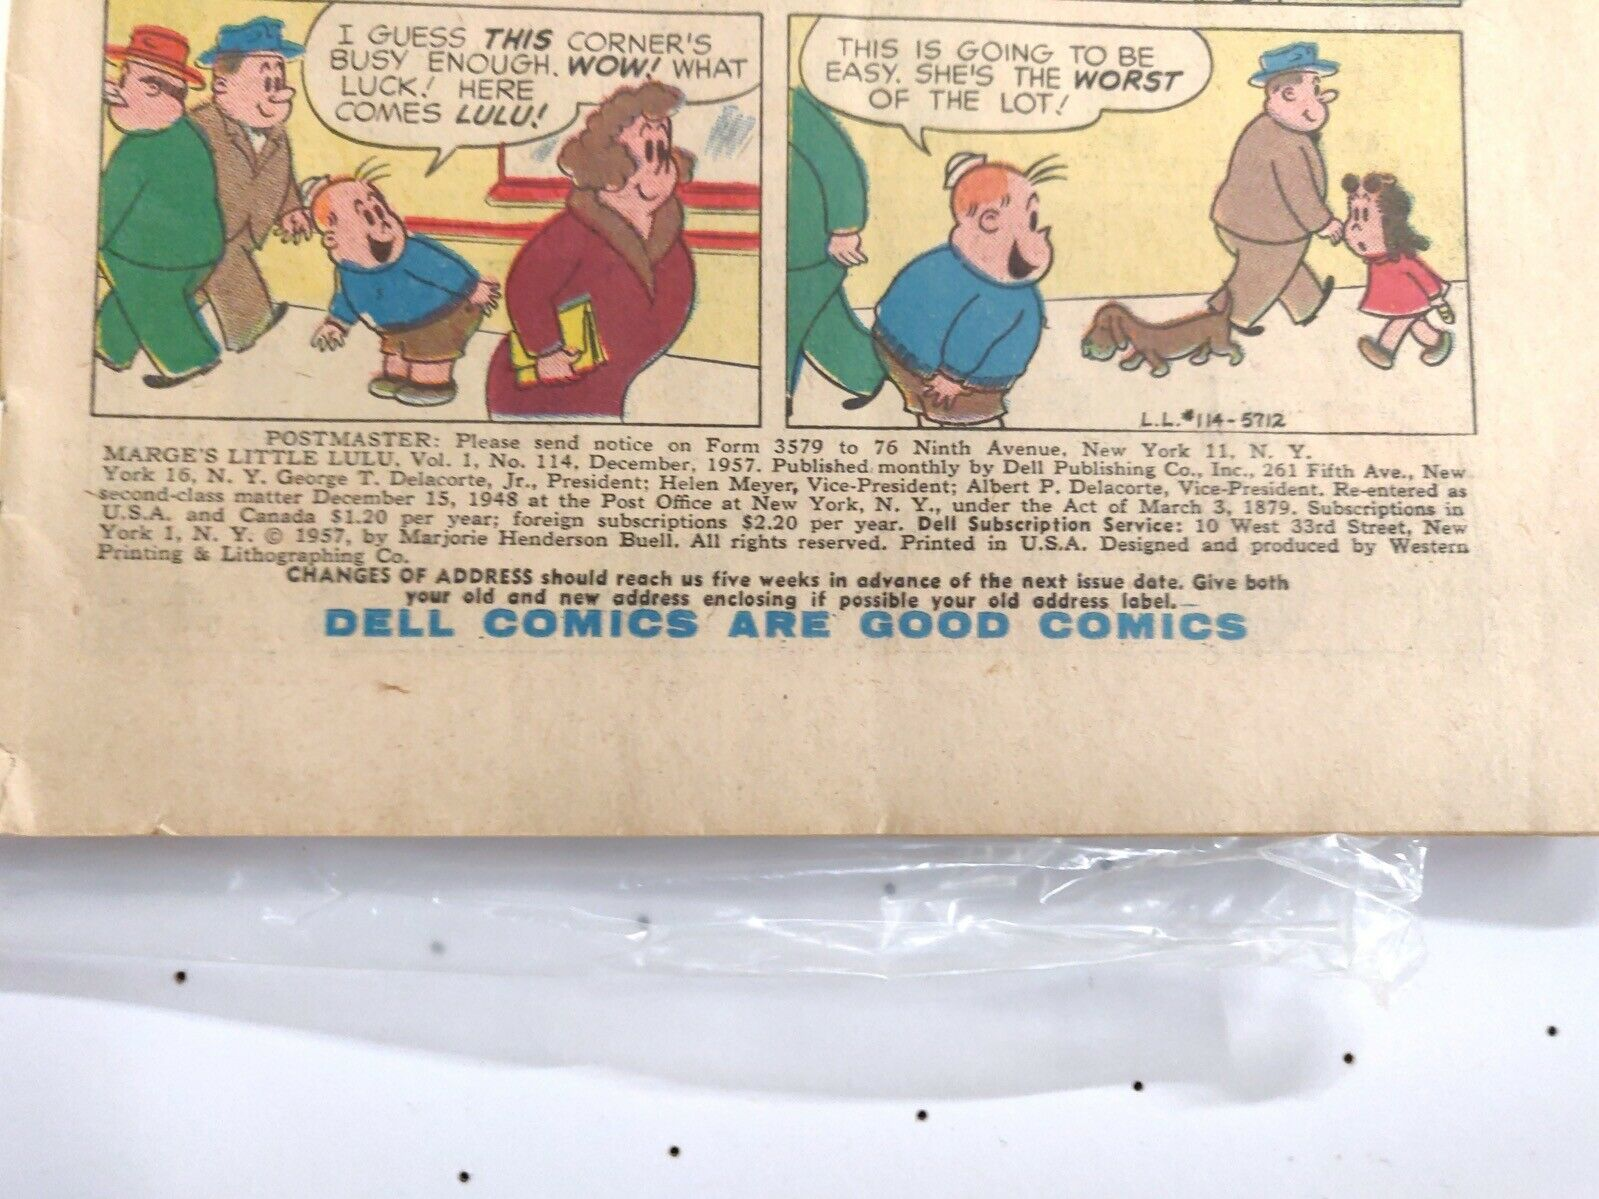 Marge's Little Lulu Issue 117 December 1955 Dell VG